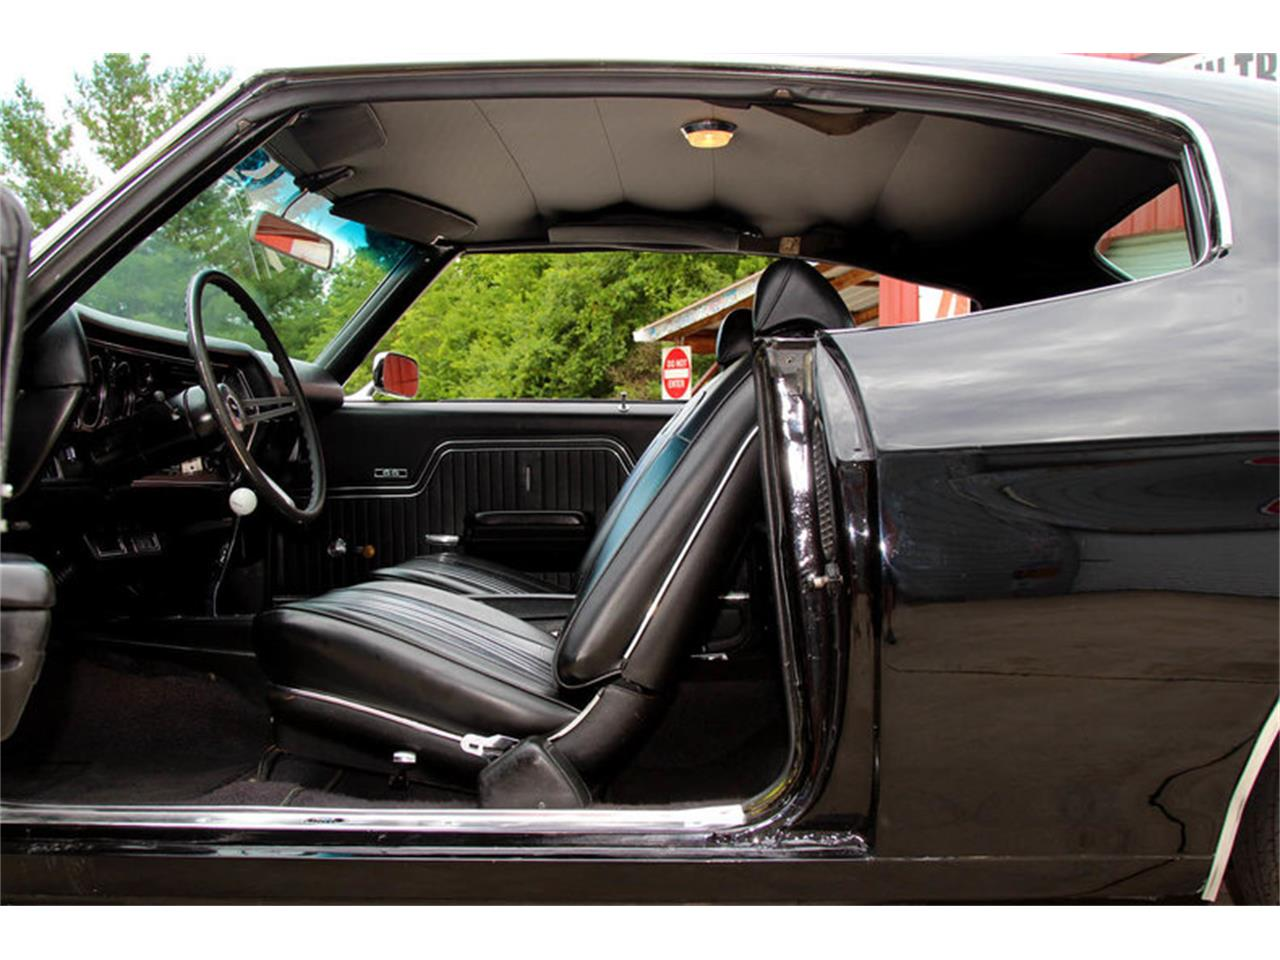 Large Picture of '72 Chevelle located in Tennessee - $46,995.00 - NRB6